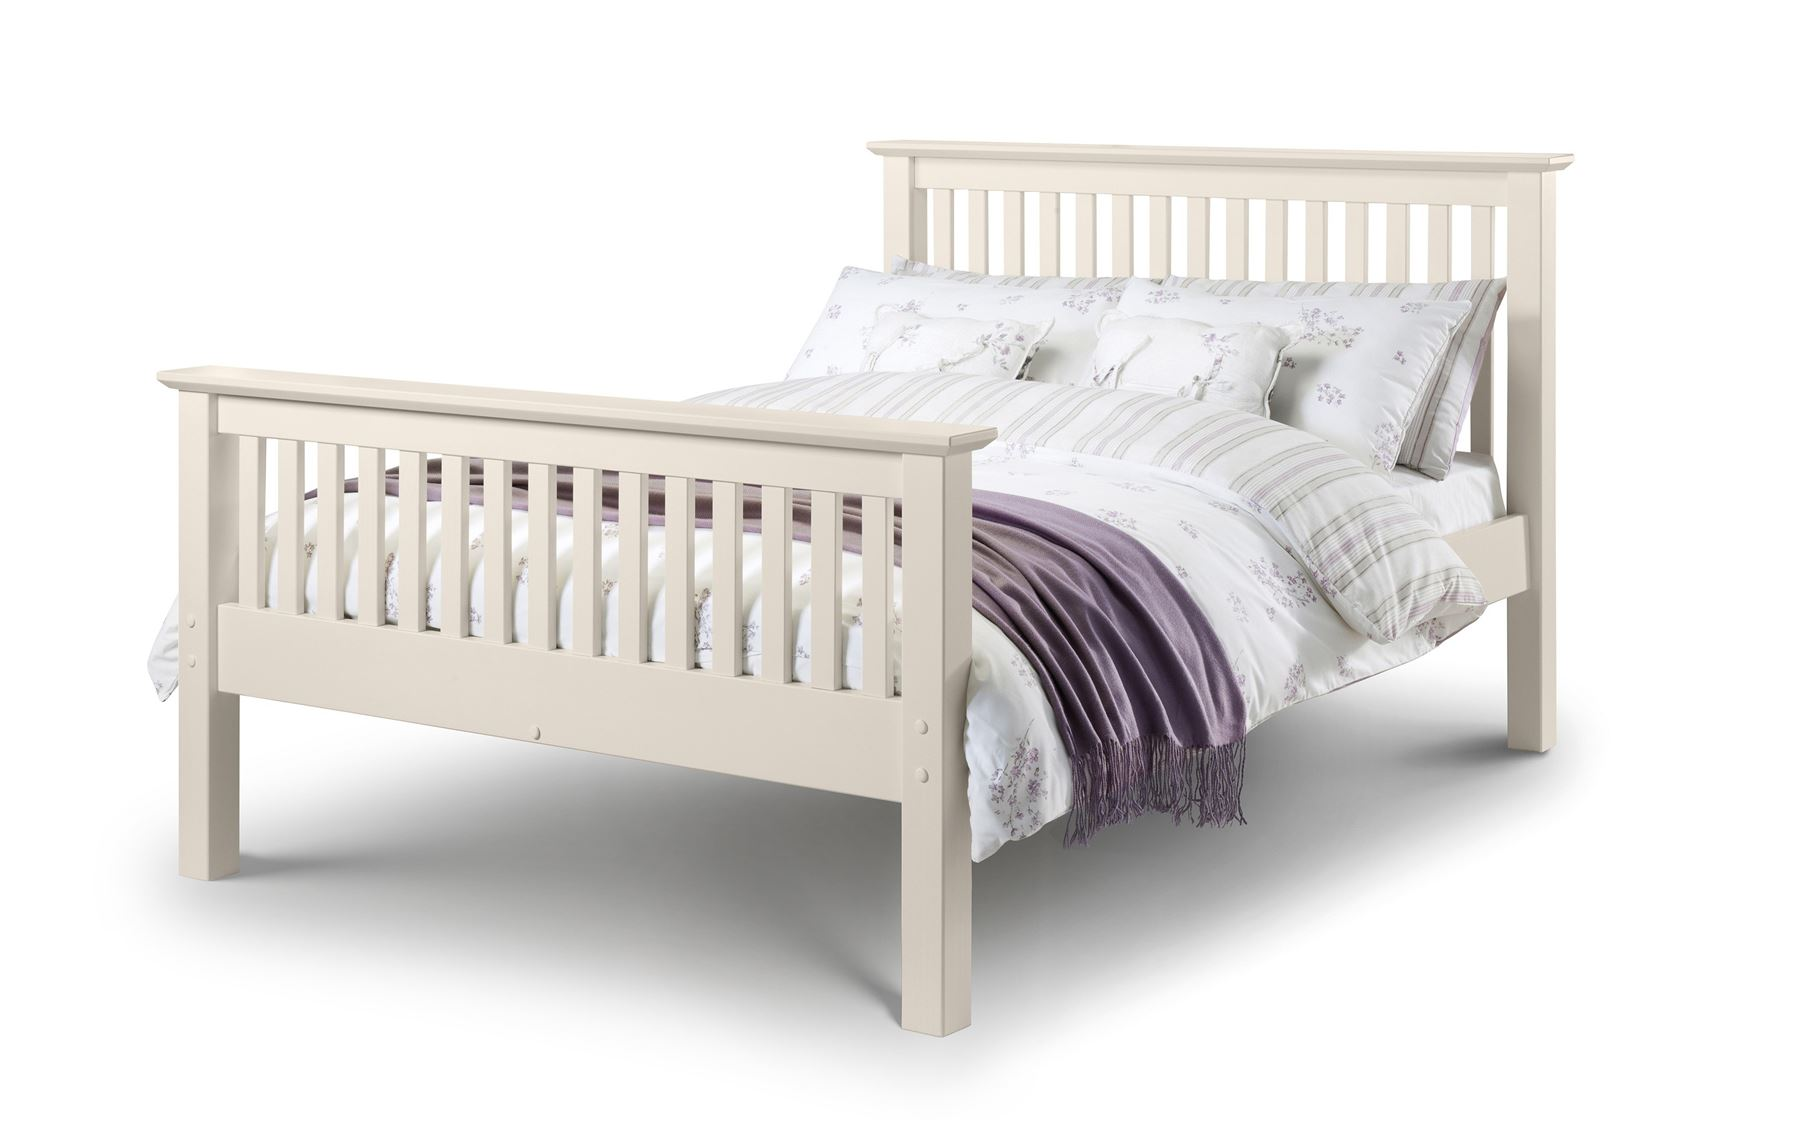 Julian Bowen Barcelona HFE Solid Wood Bed Frame 5FT King Size 150cm Stone White